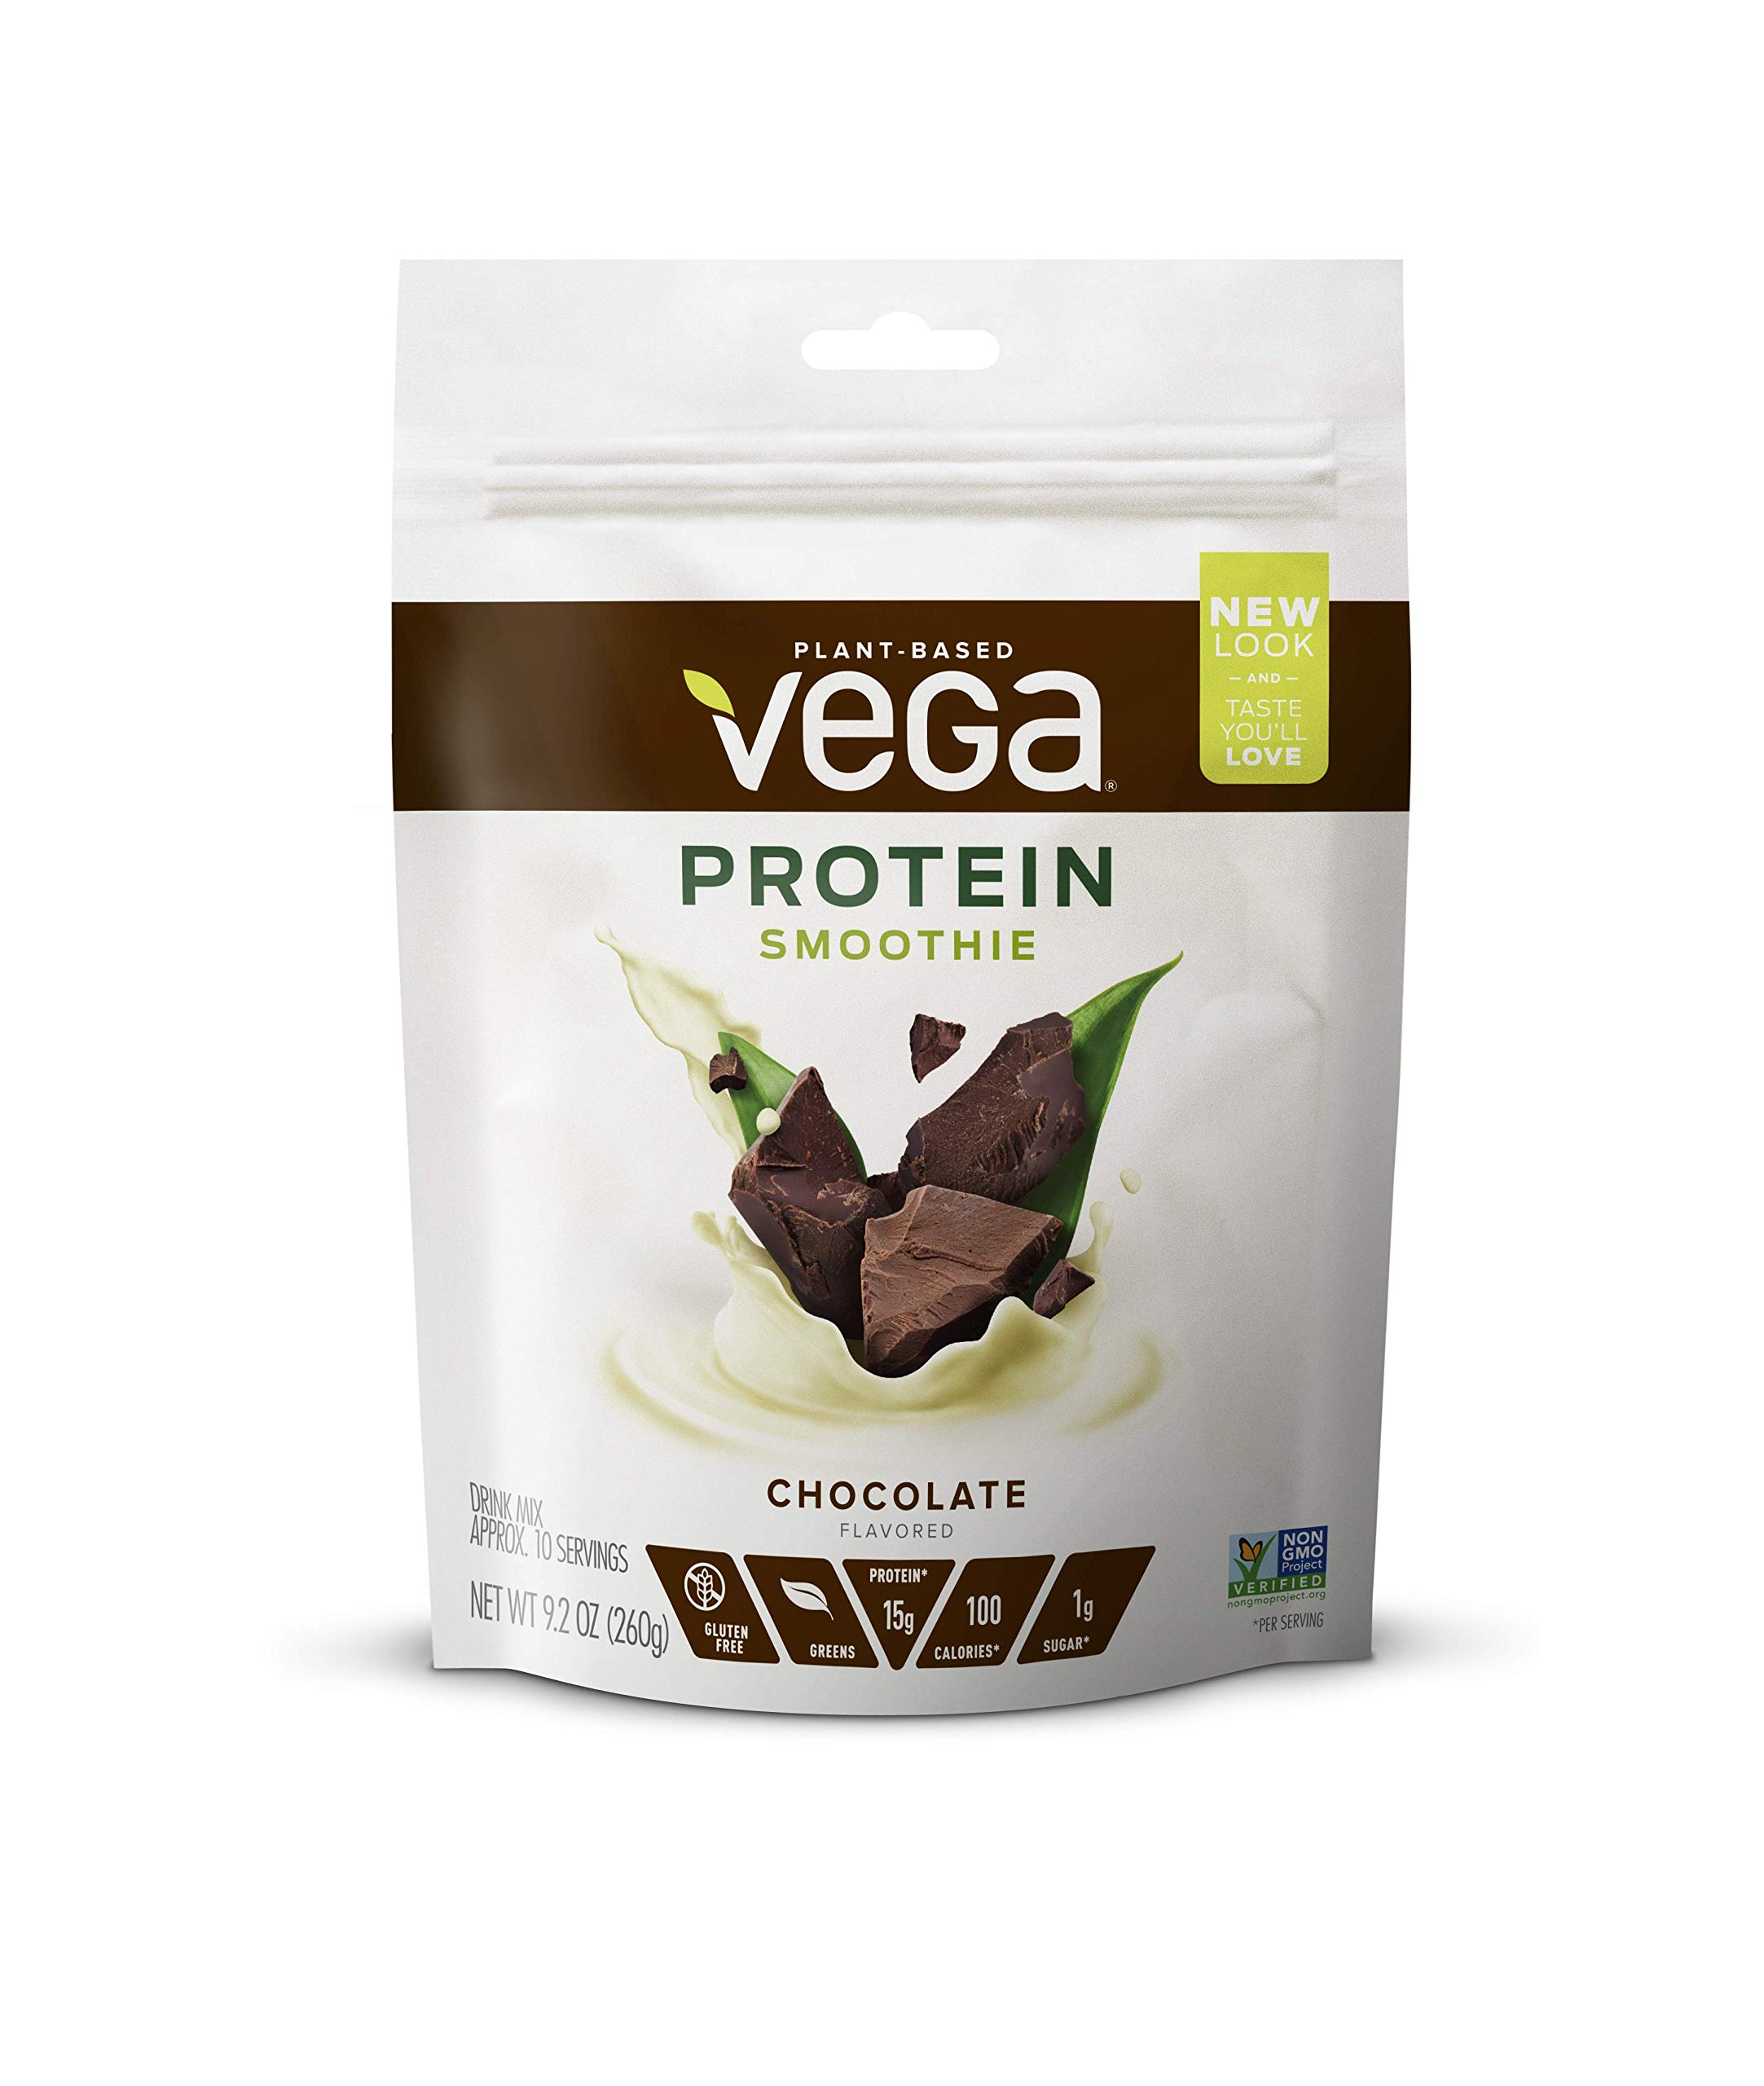 Vega Protein Smoothie Bodacious Berry 12 Servings 92 Chilschool Vanila 800 Gr 2 Box Choc A Lot Pouch Oz